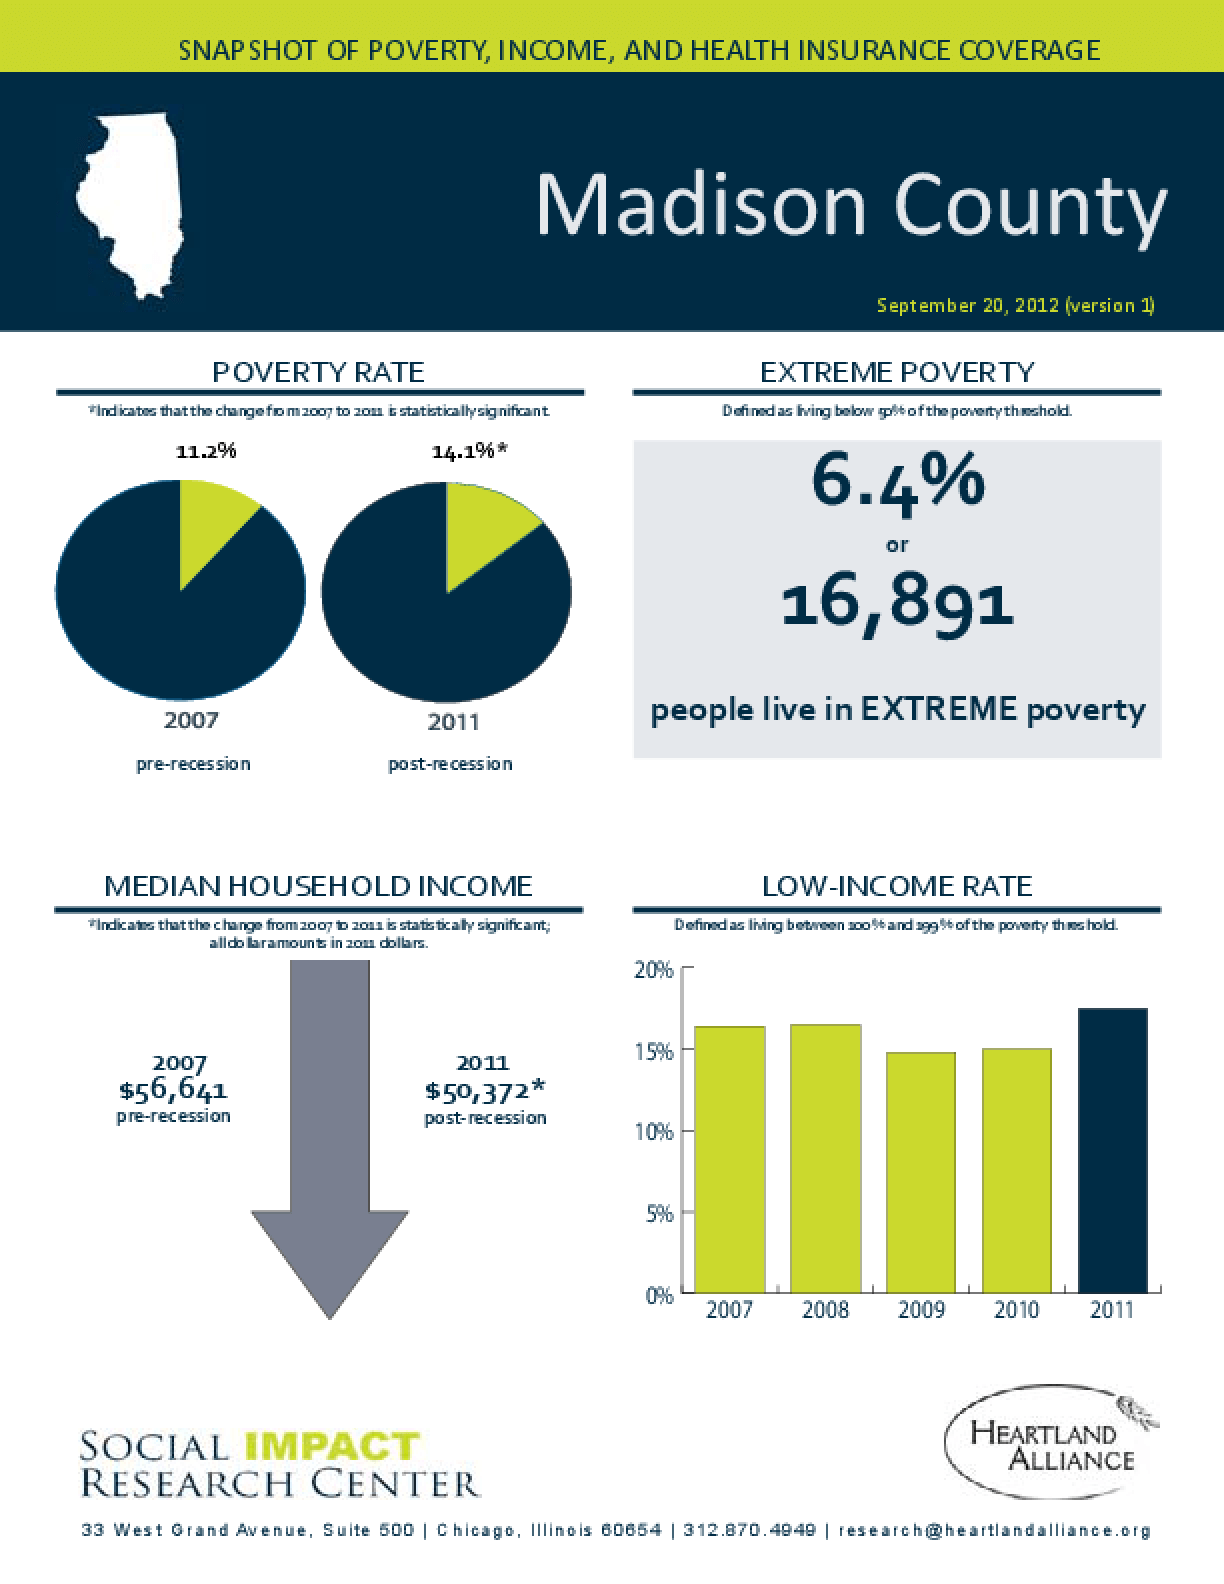 Madison County: Snapshot of Poverty, Income, and Health Insurance Coverage - 2011